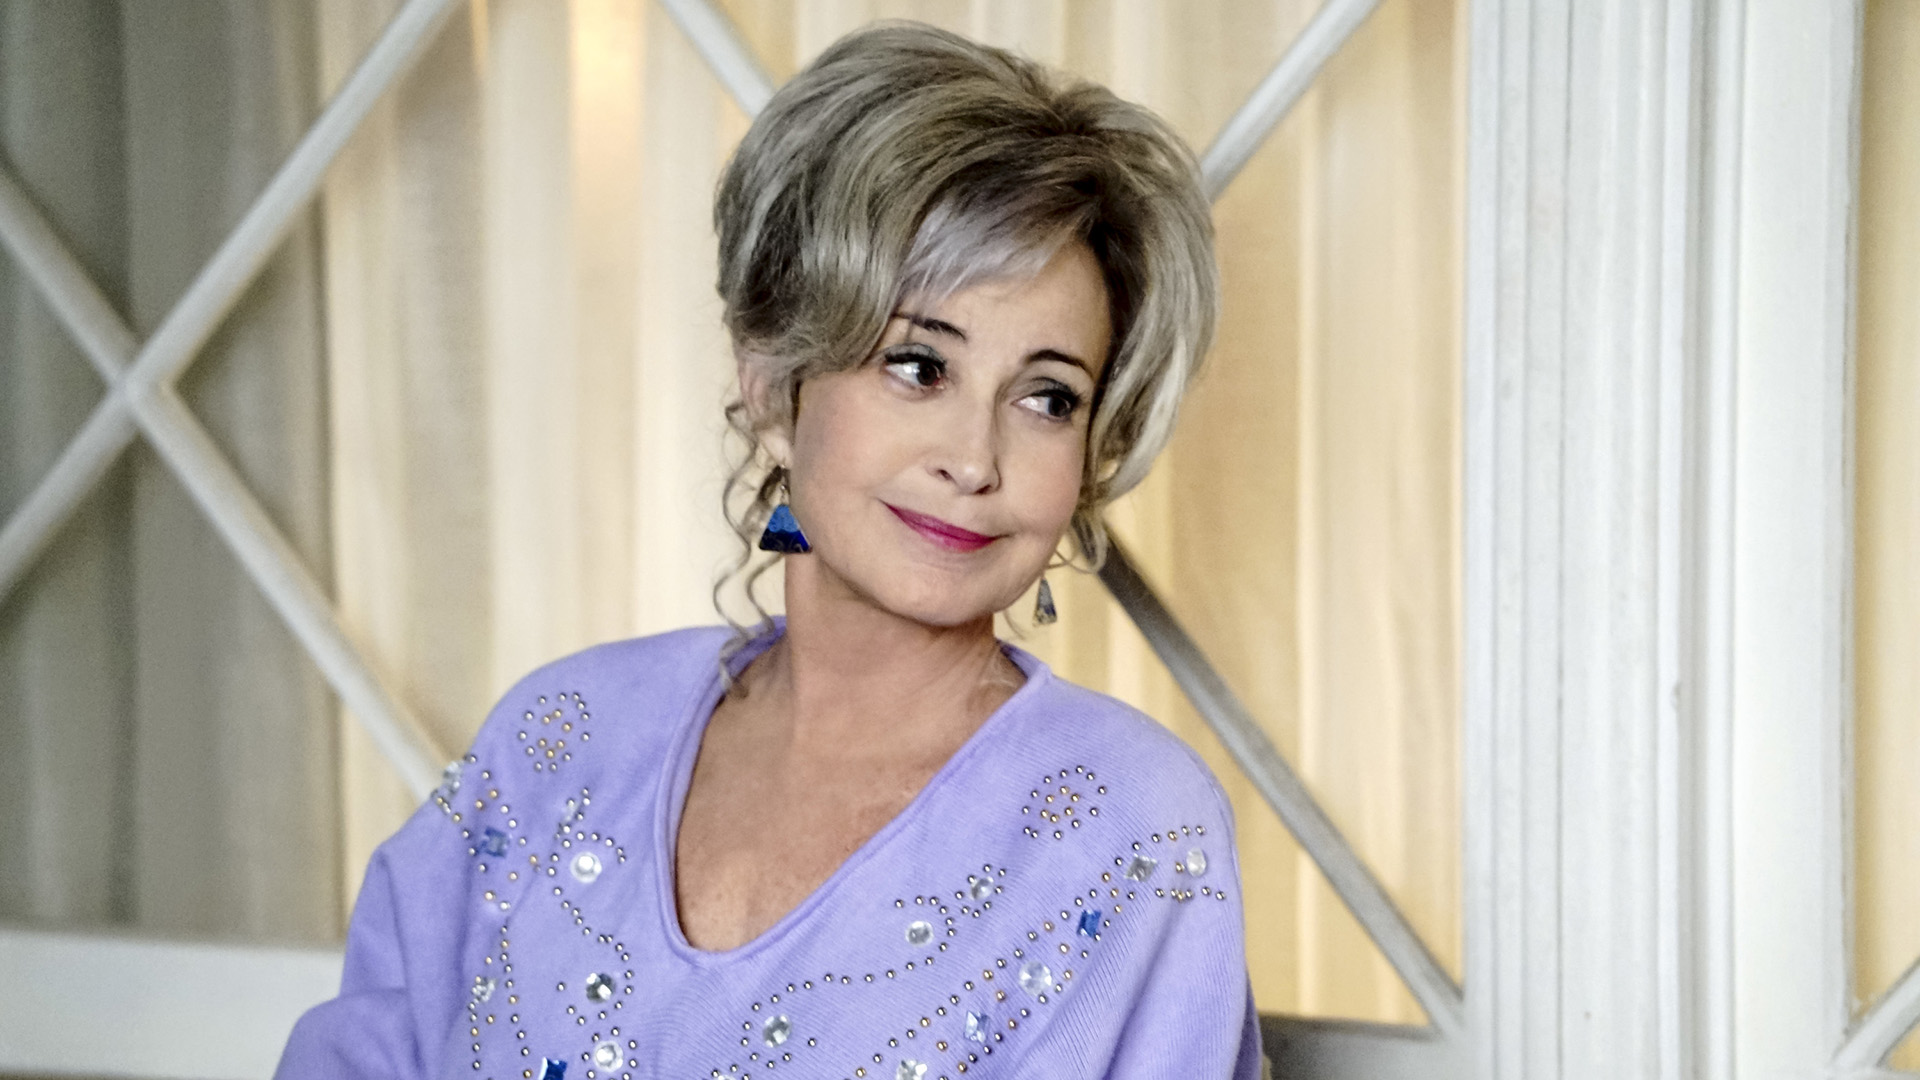 Annie Potts from Young Sheldon